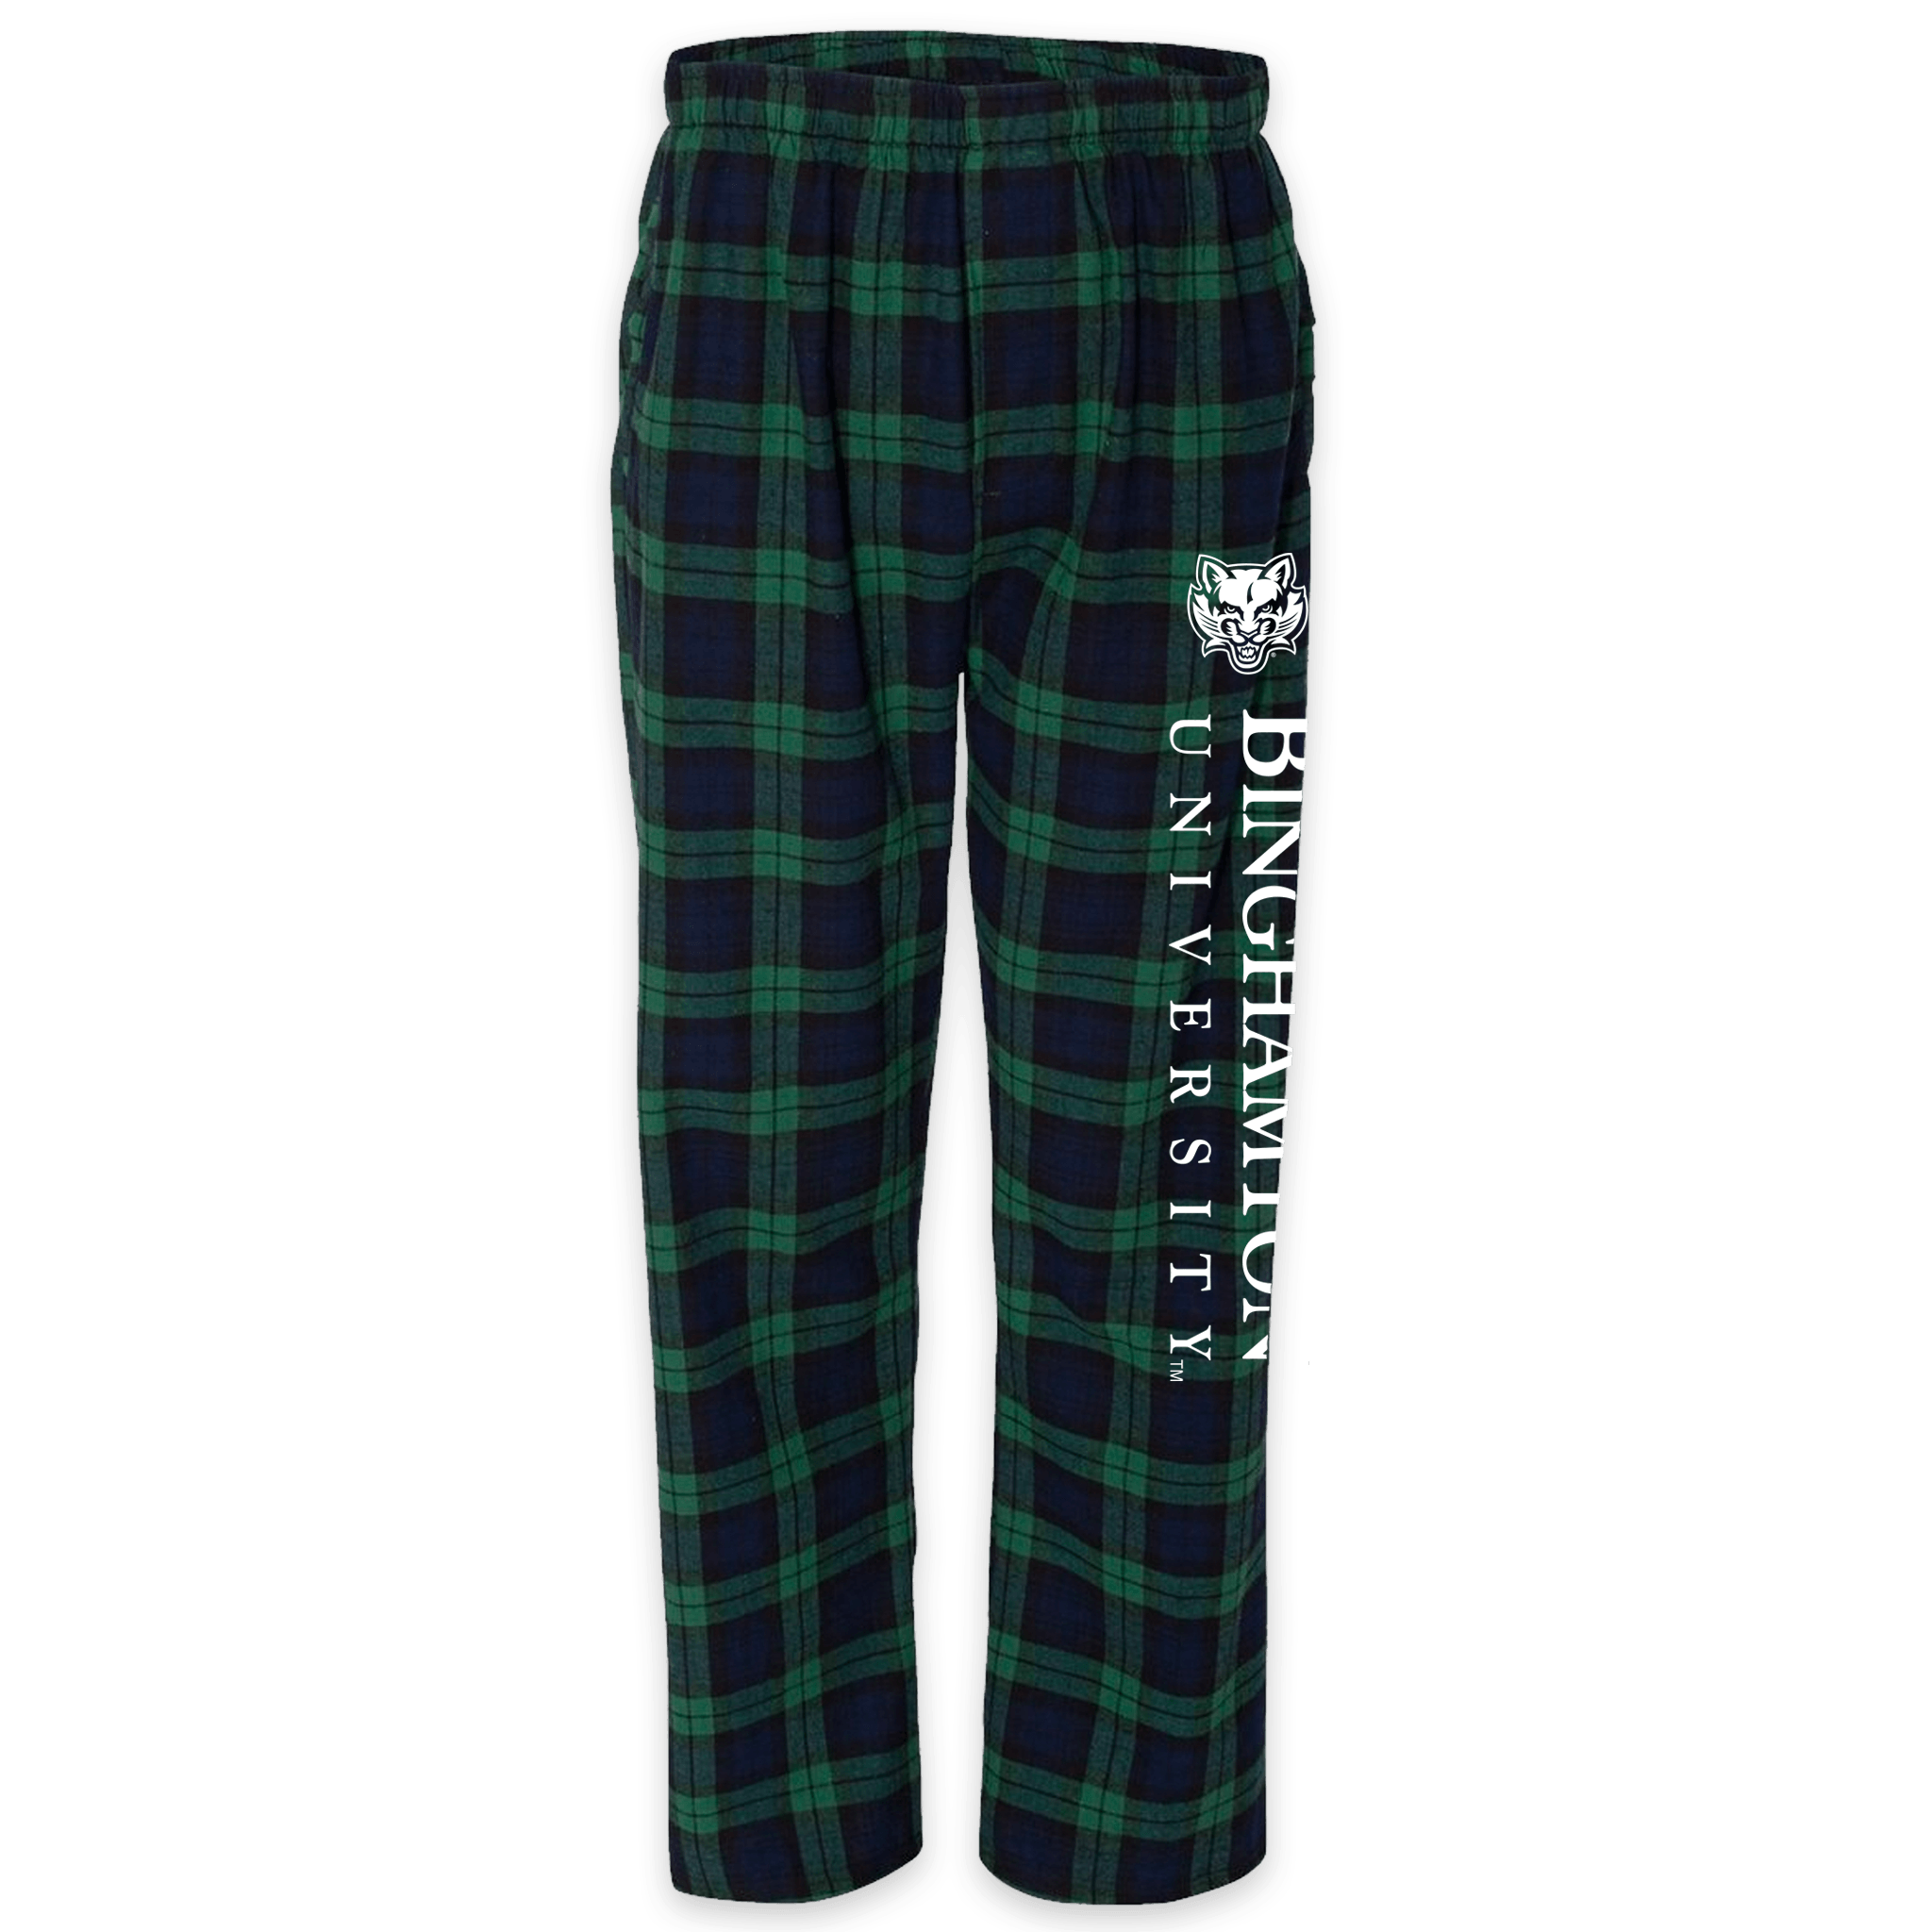 Binghamton University Sleep Pants!